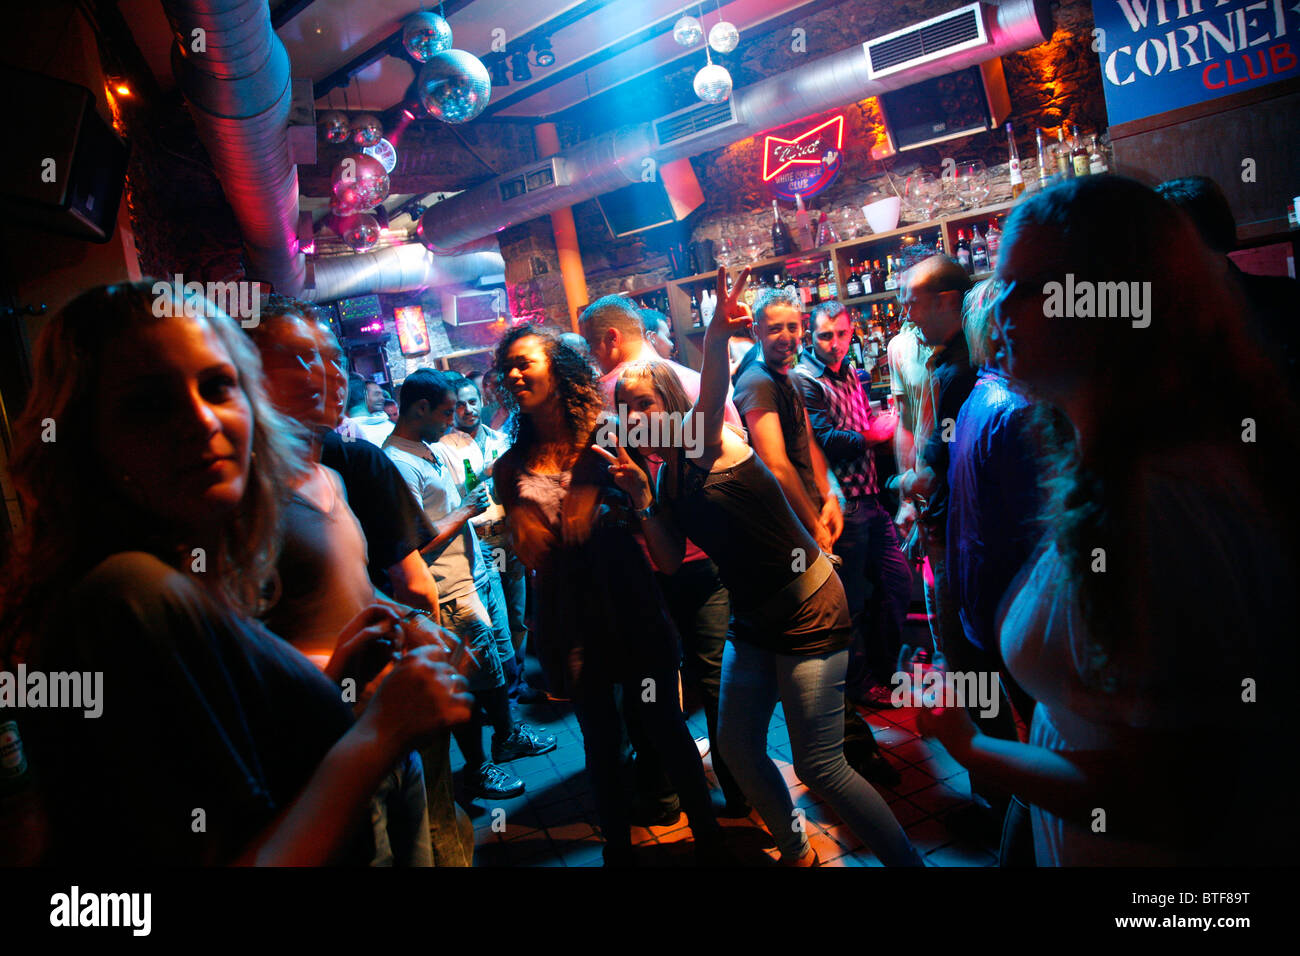 Gallery images and information kos greece nightlife - Stock Photo White Corner Club In The Bar Street At Kos Town Kos Greece